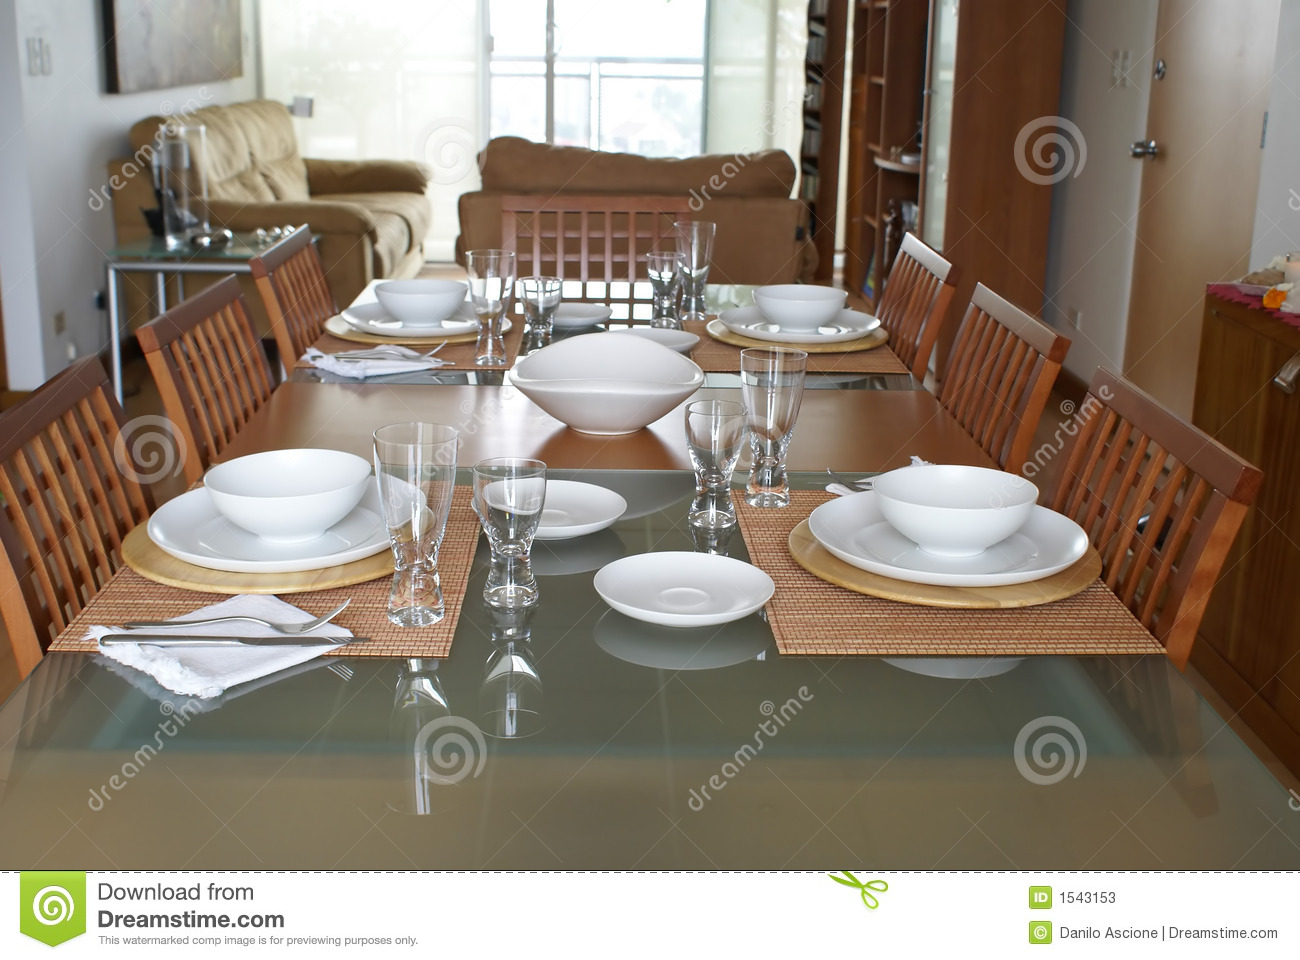 dining room with table setting stock photos - Dining Room Table Settings